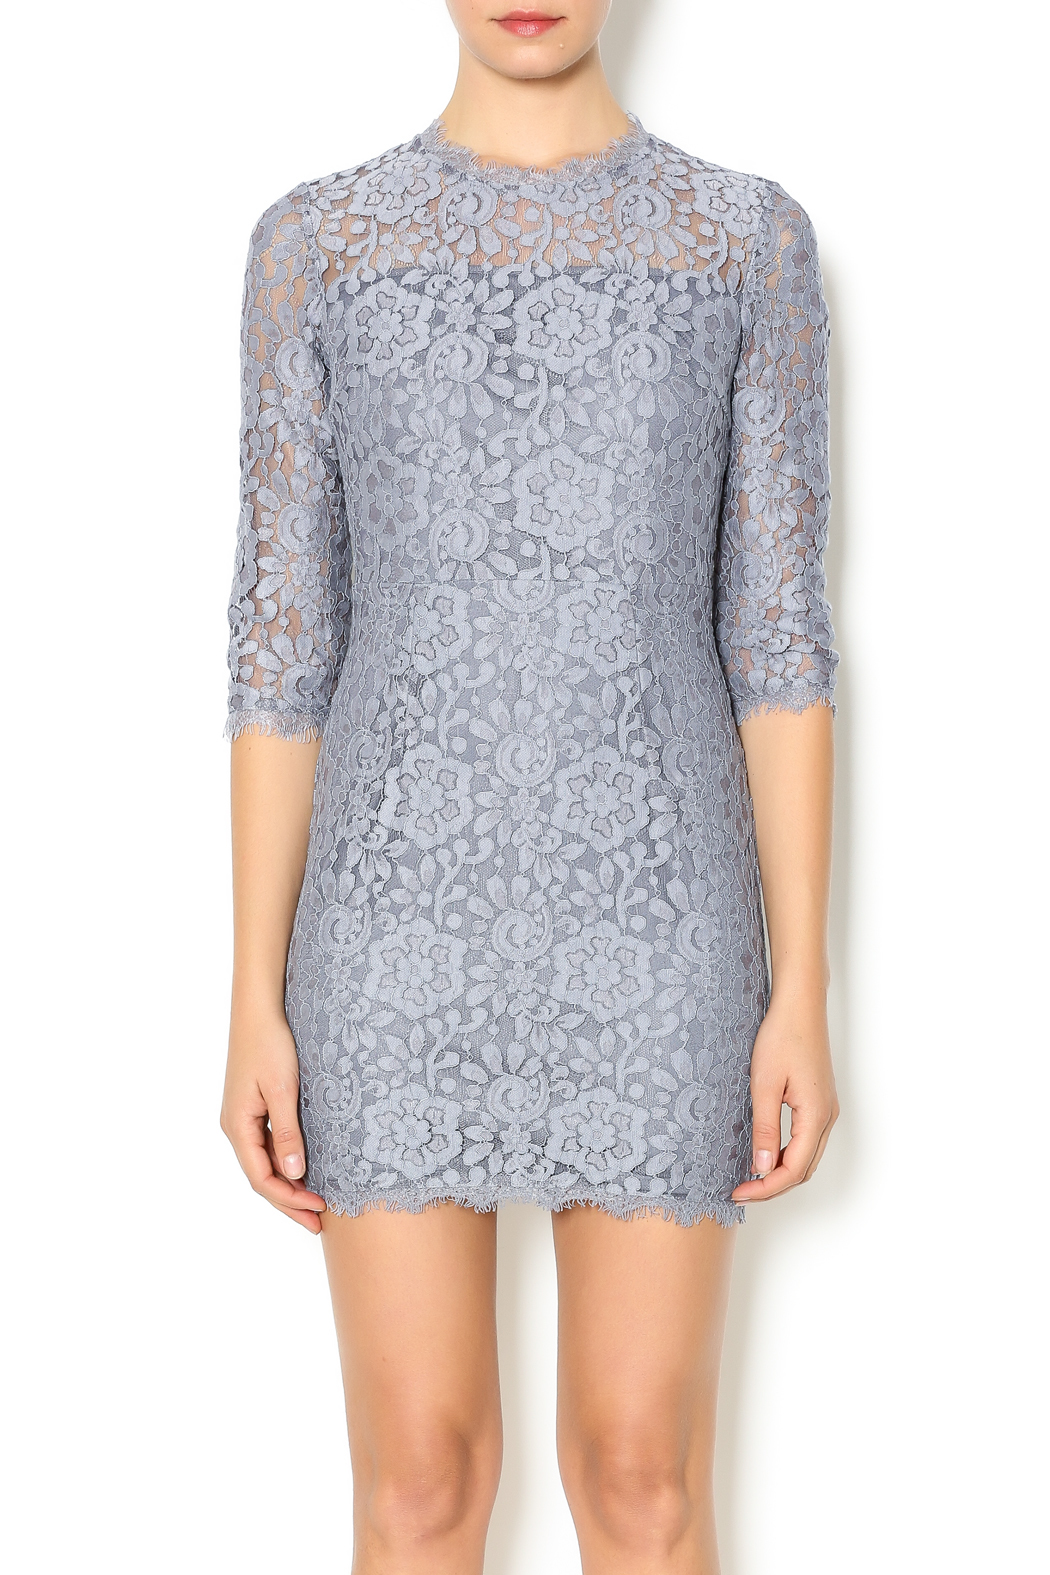 Dress Forum Inc Lace Overlay Dress From New York By Dor Ldor